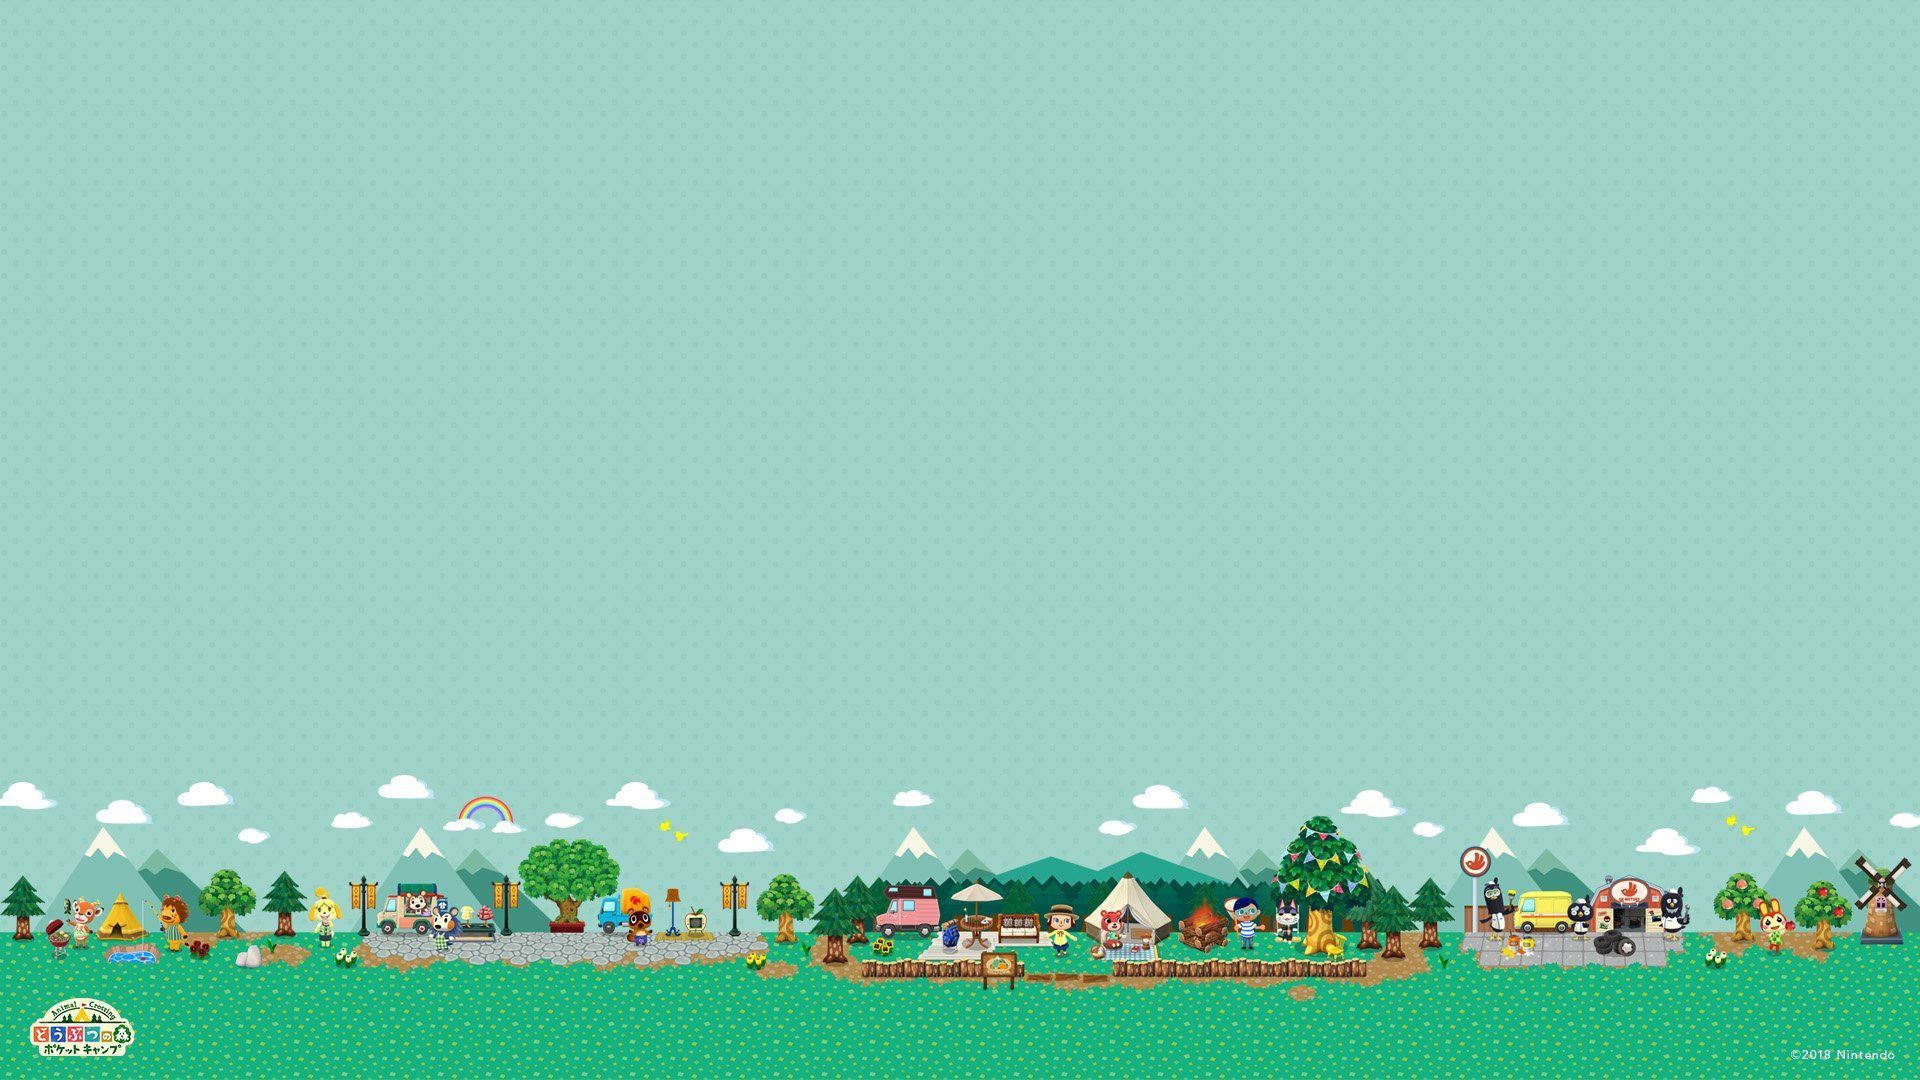 Animal Crossing Desktop Wallpaper In 2020 Animal Crossing Pc Animal Wallpaper Animal Crossing